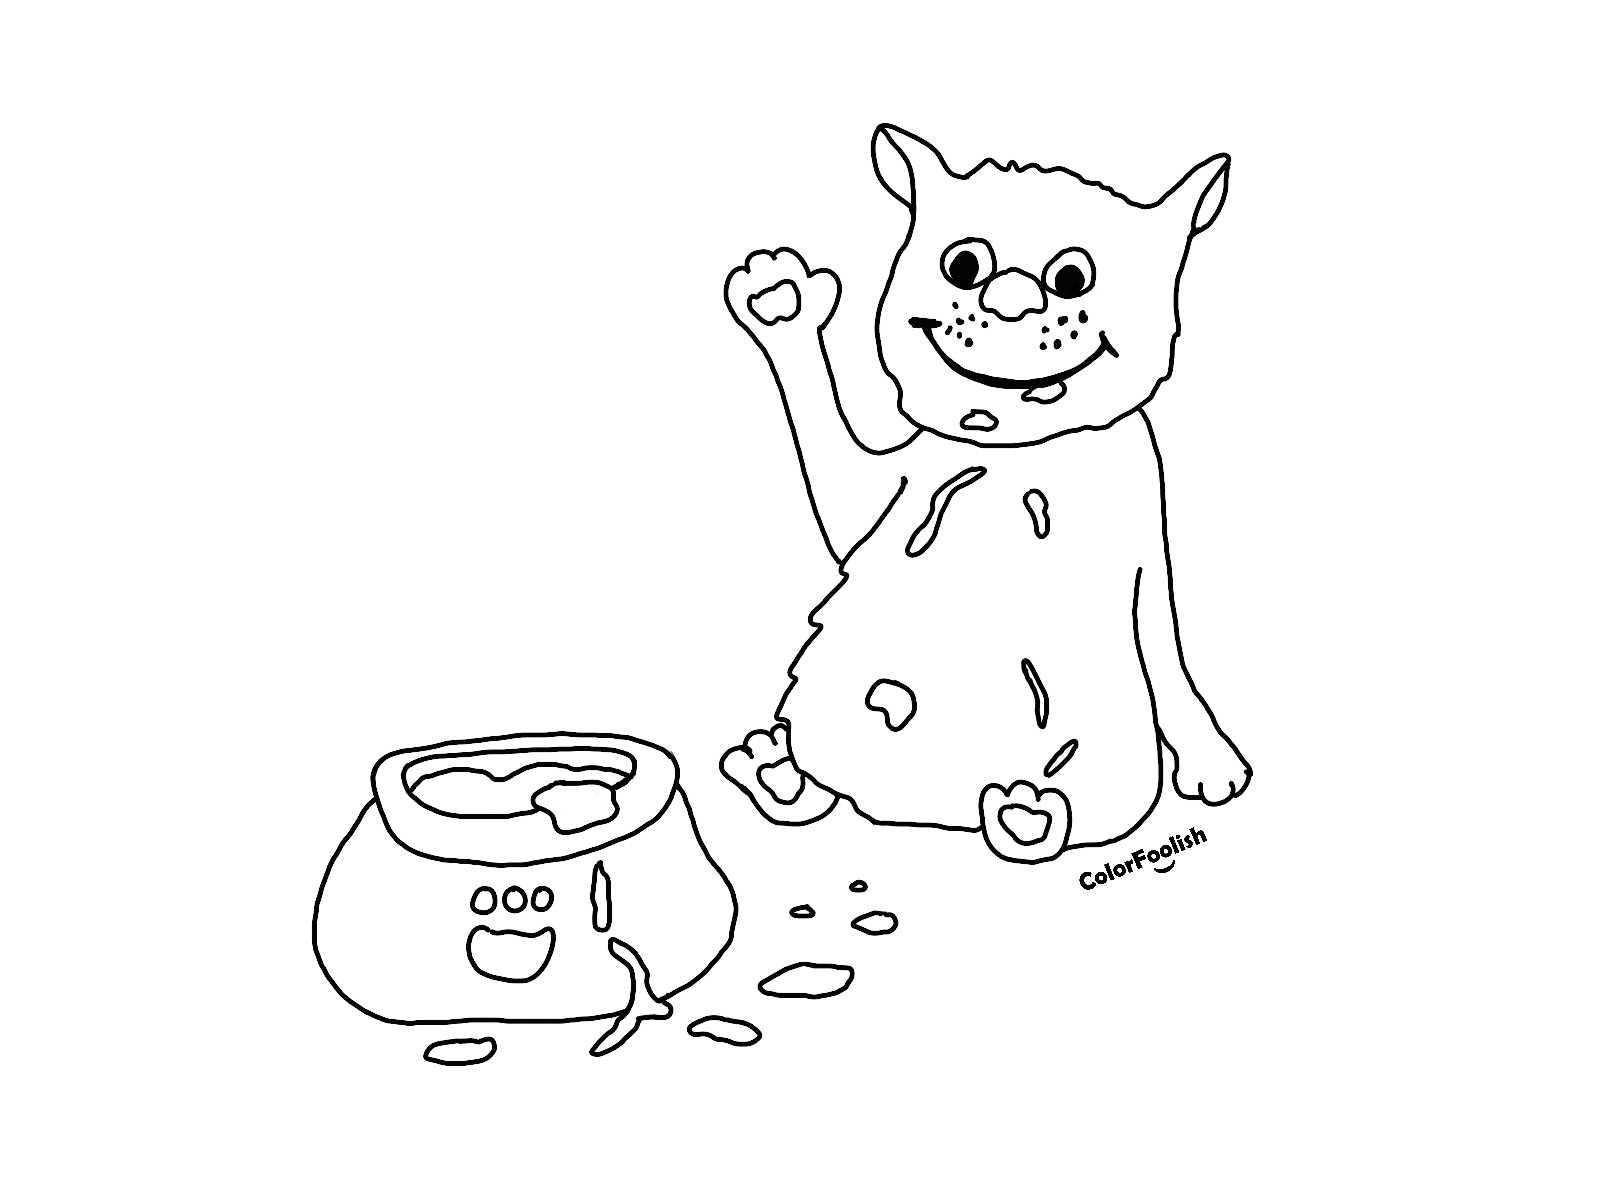 Coloring page of a cat that just ate